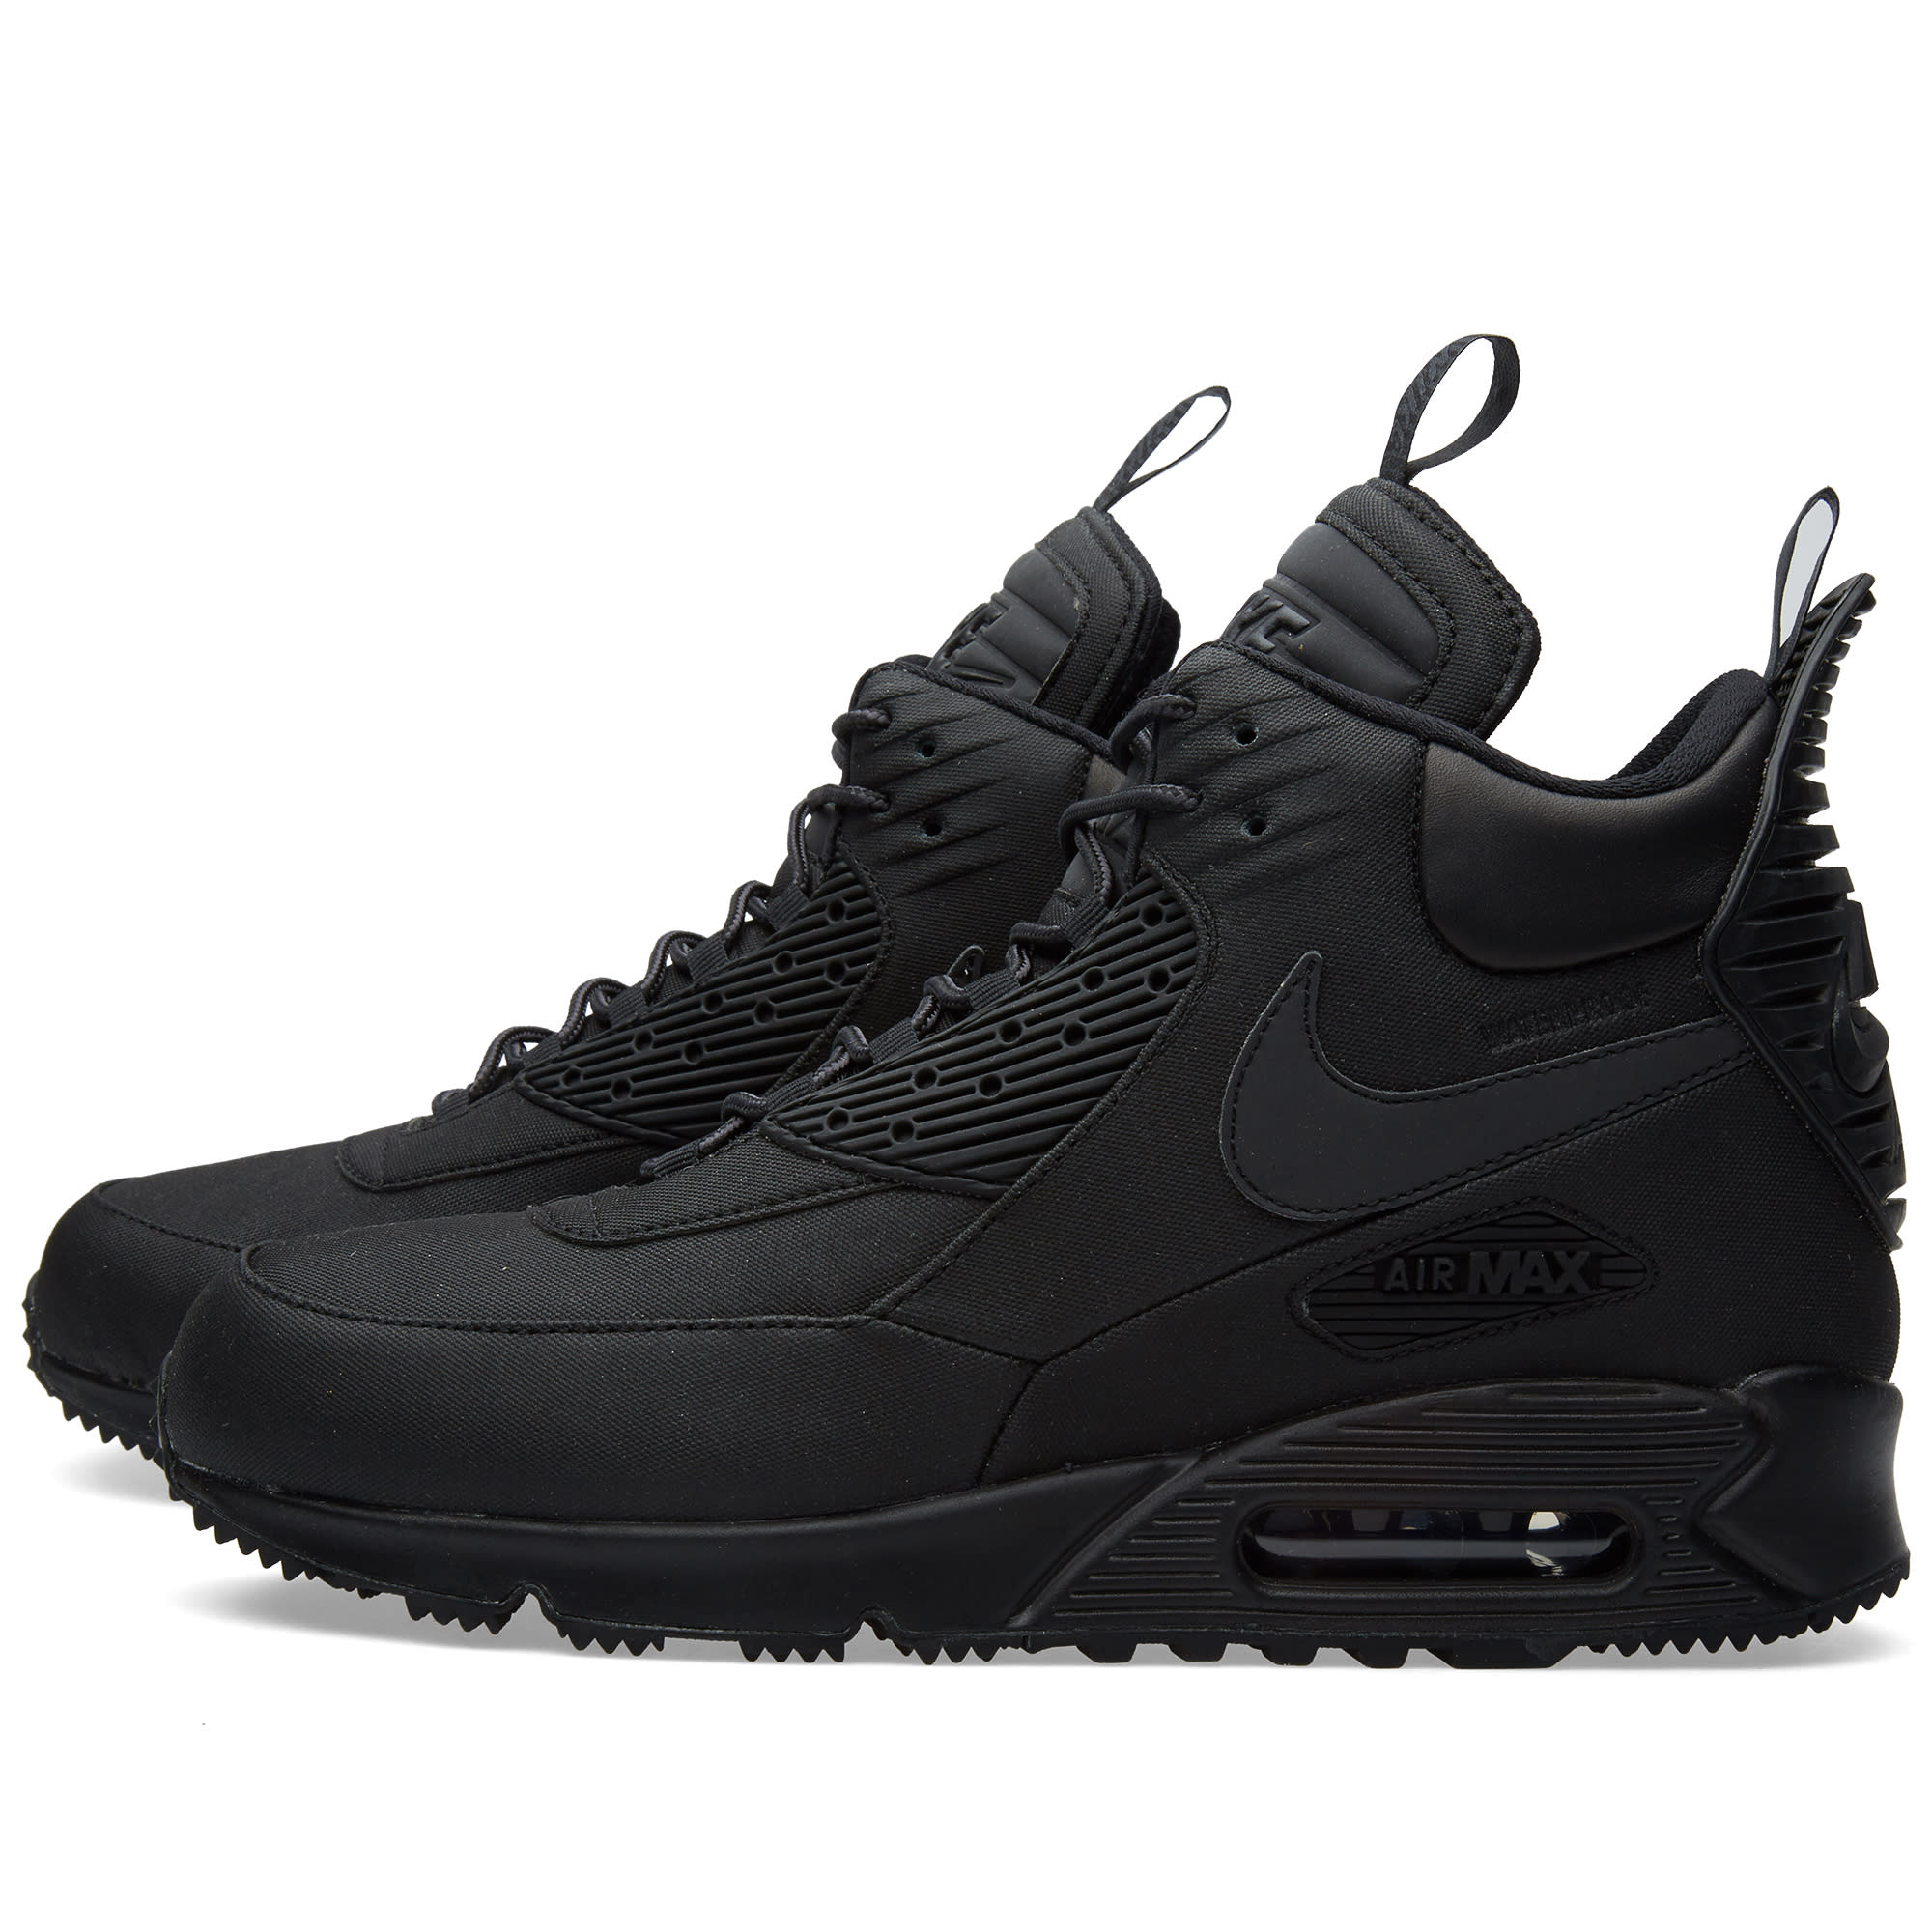 Air Max Nike 90 Winter Sneakerboot 80nkOPw